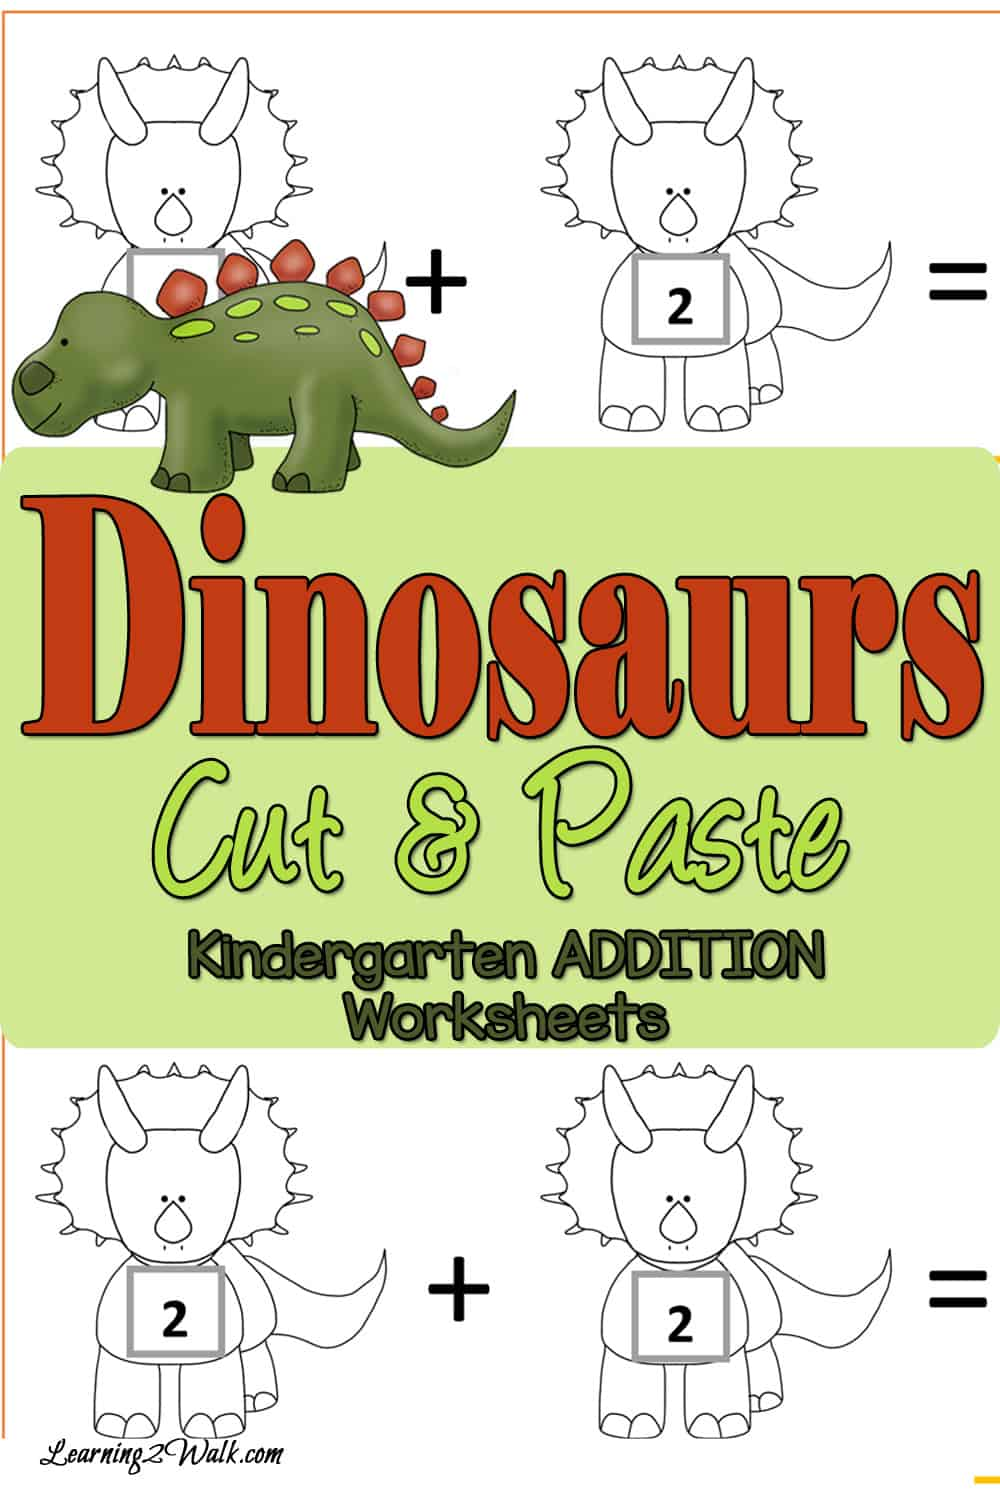 math worksheet : dinosaurs patterns worksheets for kindergarten : Cut And Paste Worksheets Kindergarten